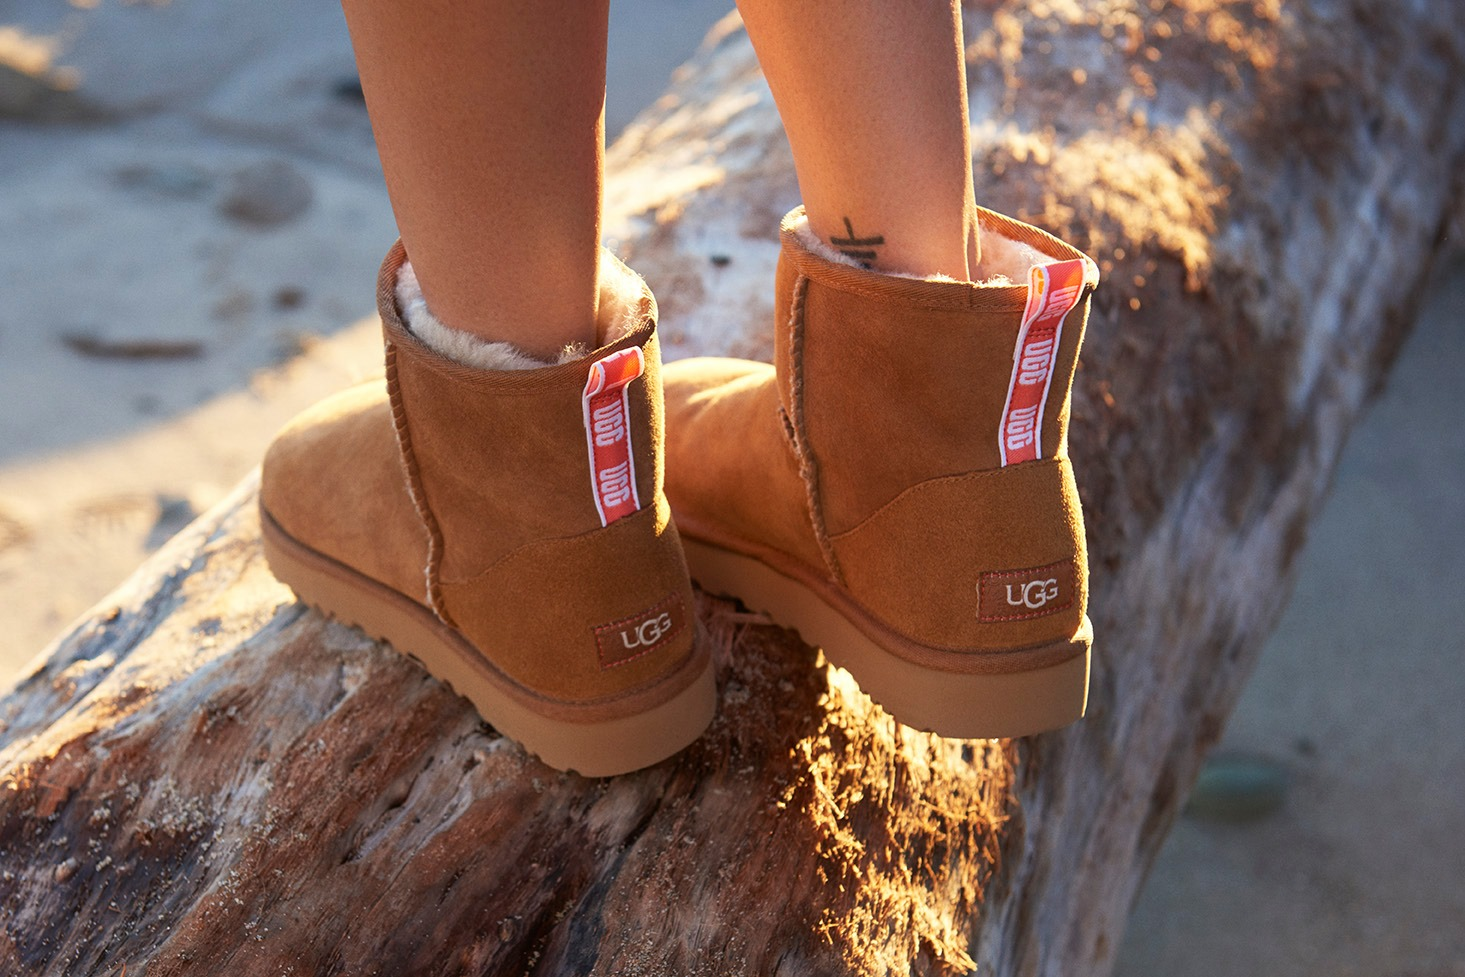 b31520c244a UGG Sale: Sandals, Slippers, Boots & More for the Whole Family ...